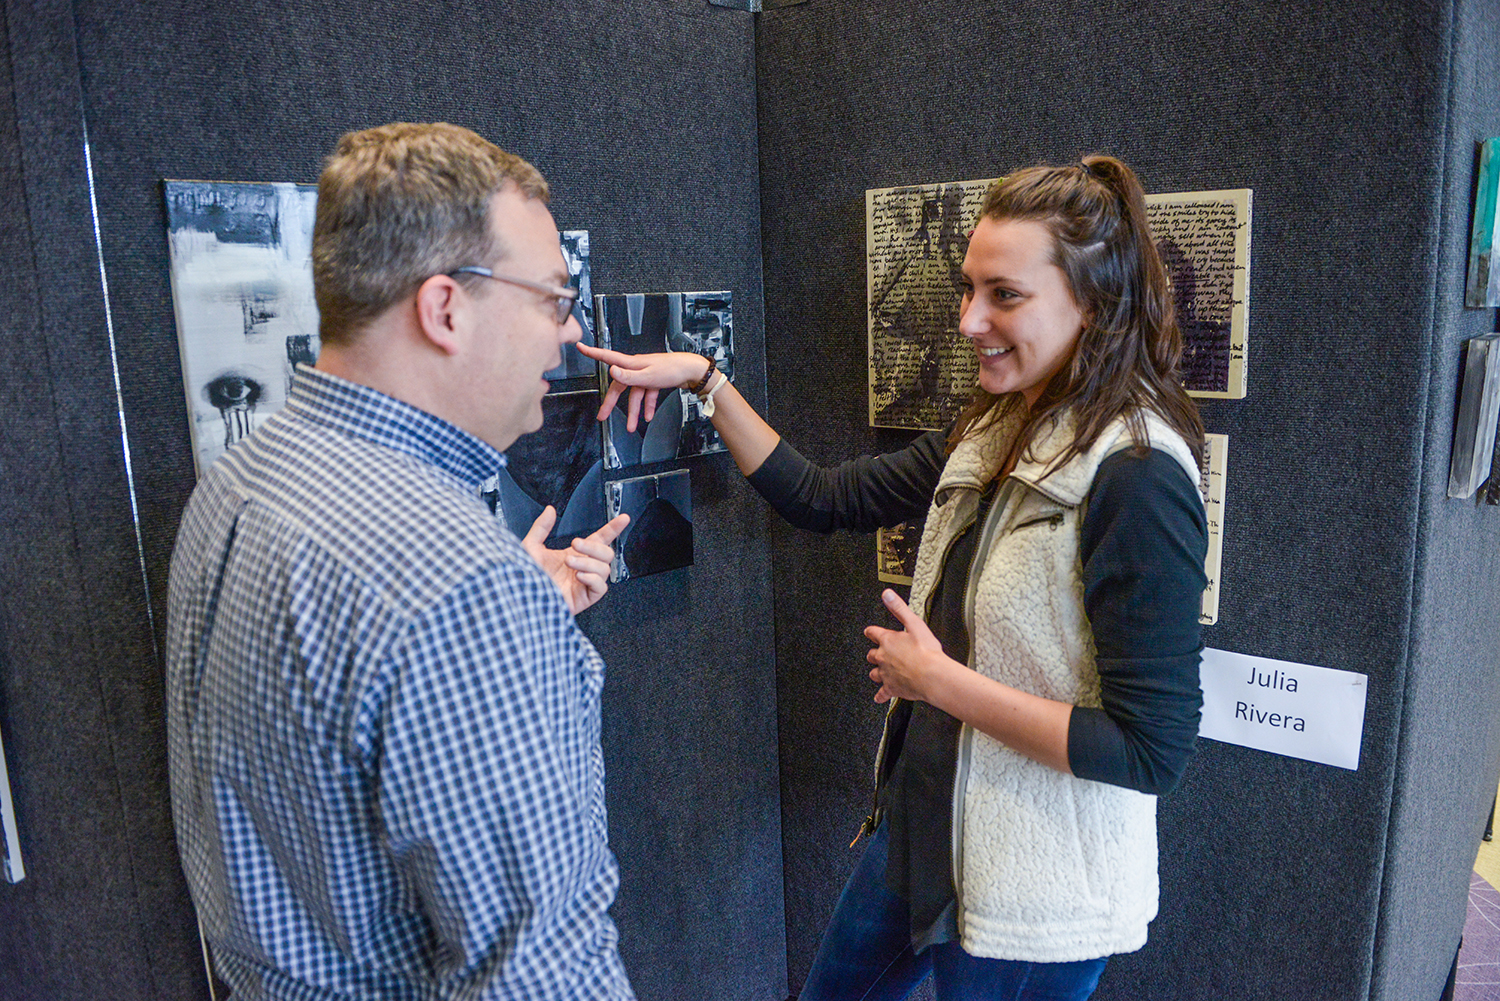 Allie Turner spoke with Scott Raynor, chair of the HPU art department, about her work in the senior studio pop up show.